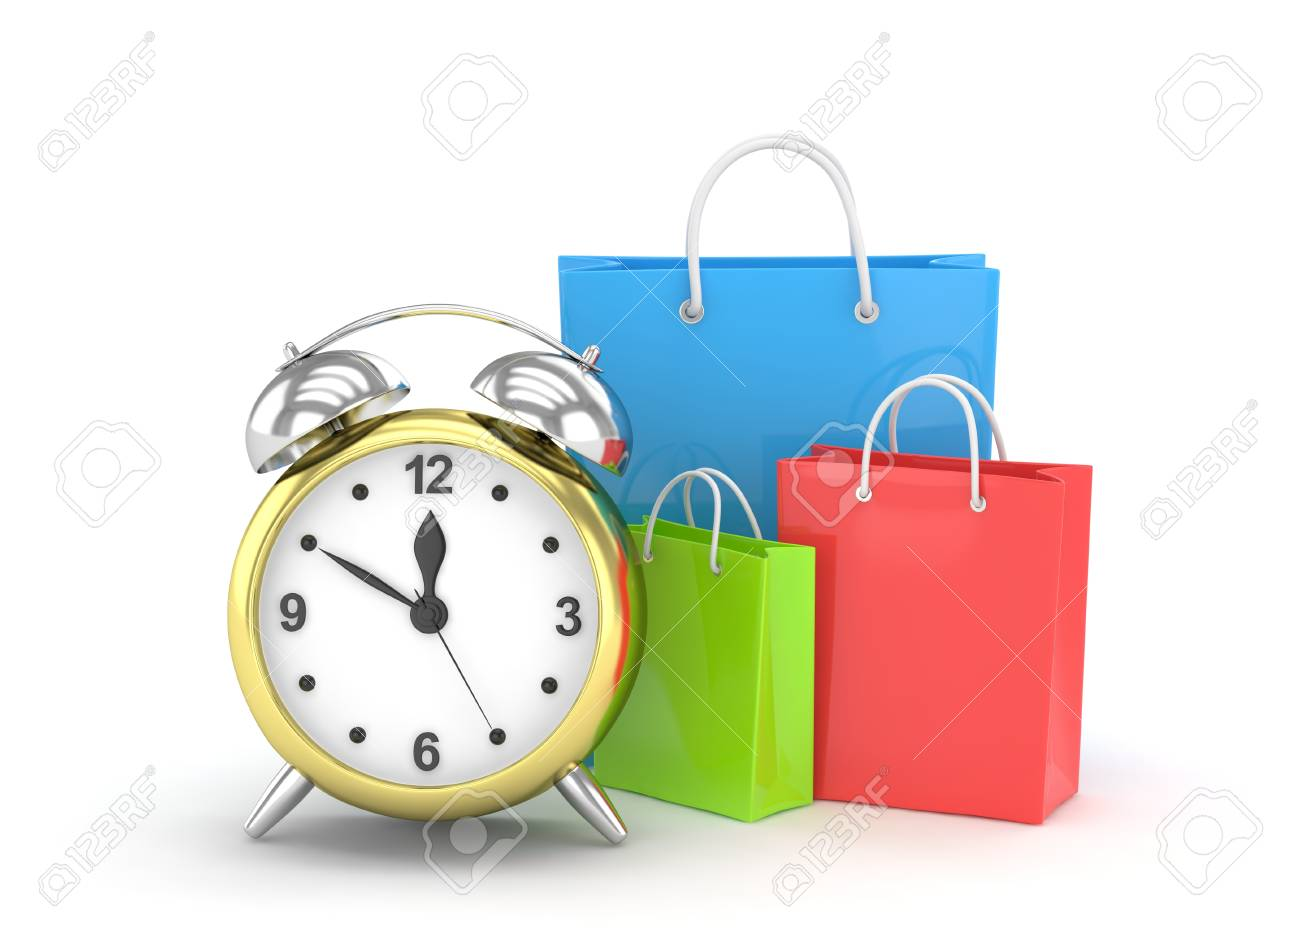 Buy Clock Alarm Clock And Shopping Bag Time To Buy Concept 3d Rendering